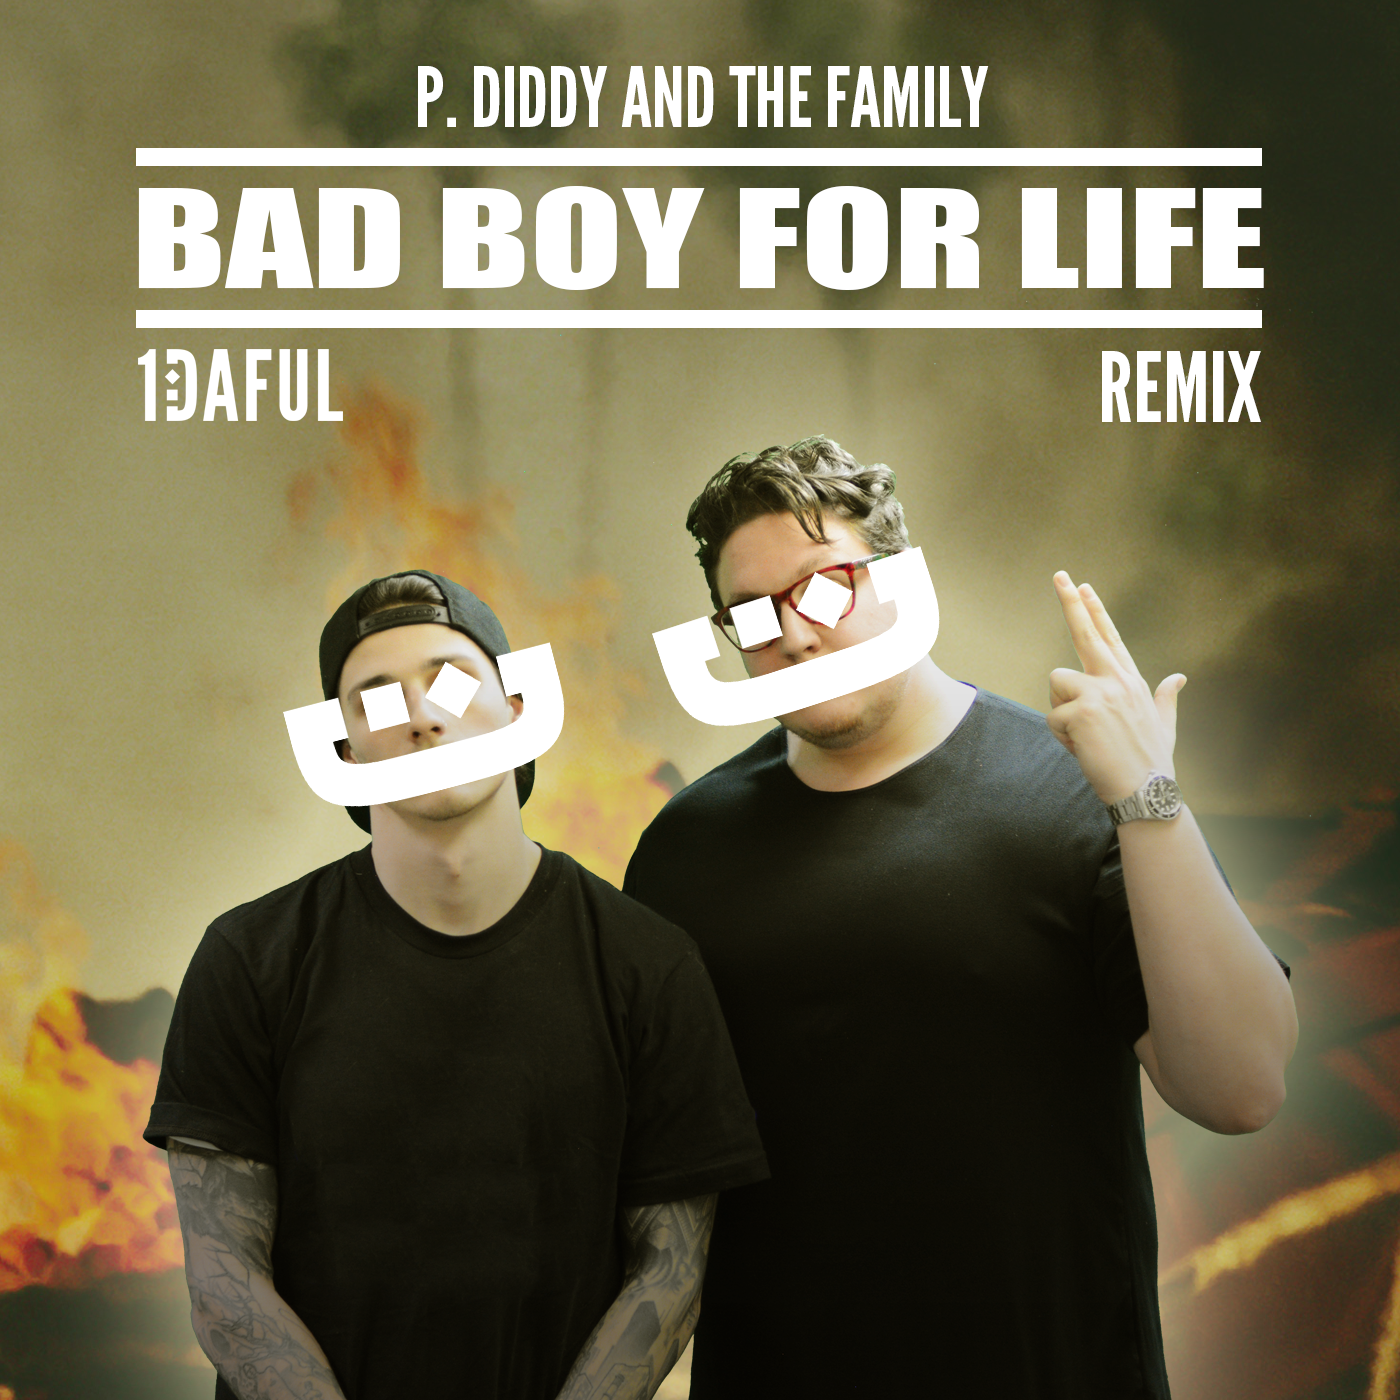 P. Diddy - Bad Boy For Life (1DAFUL Remix) - Artwork